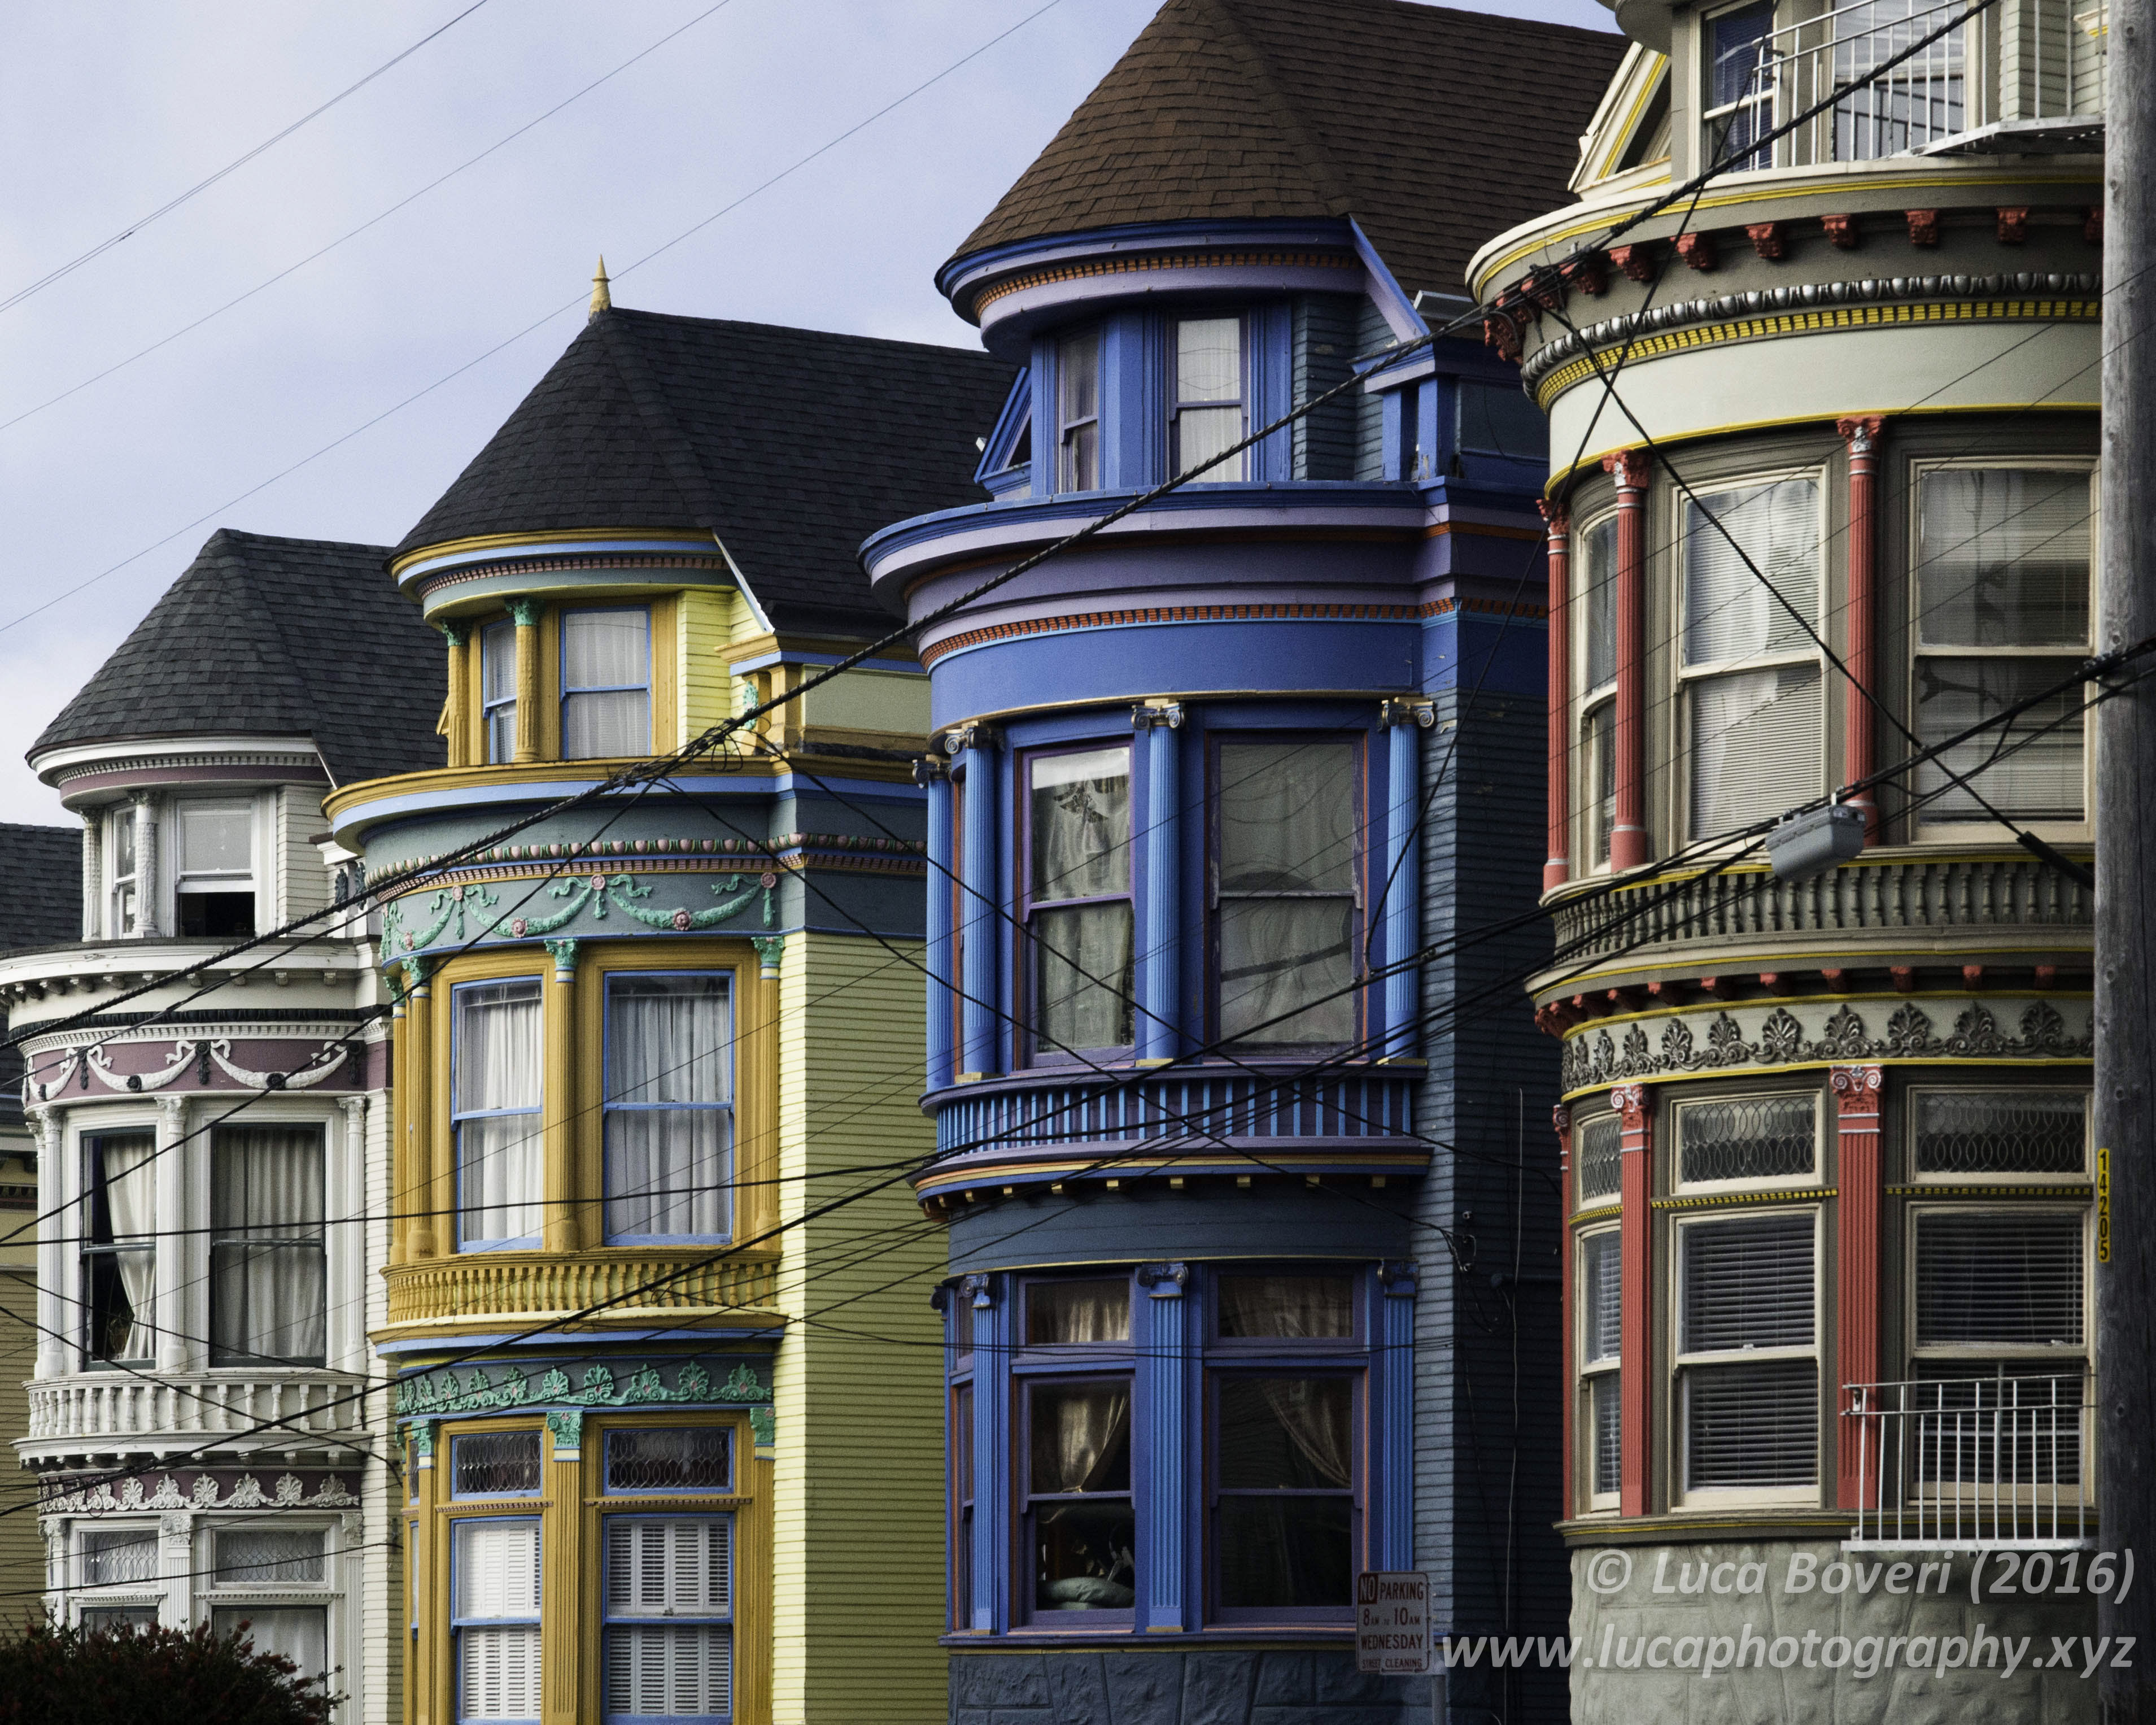 Victorian Houses. @lucaboveri